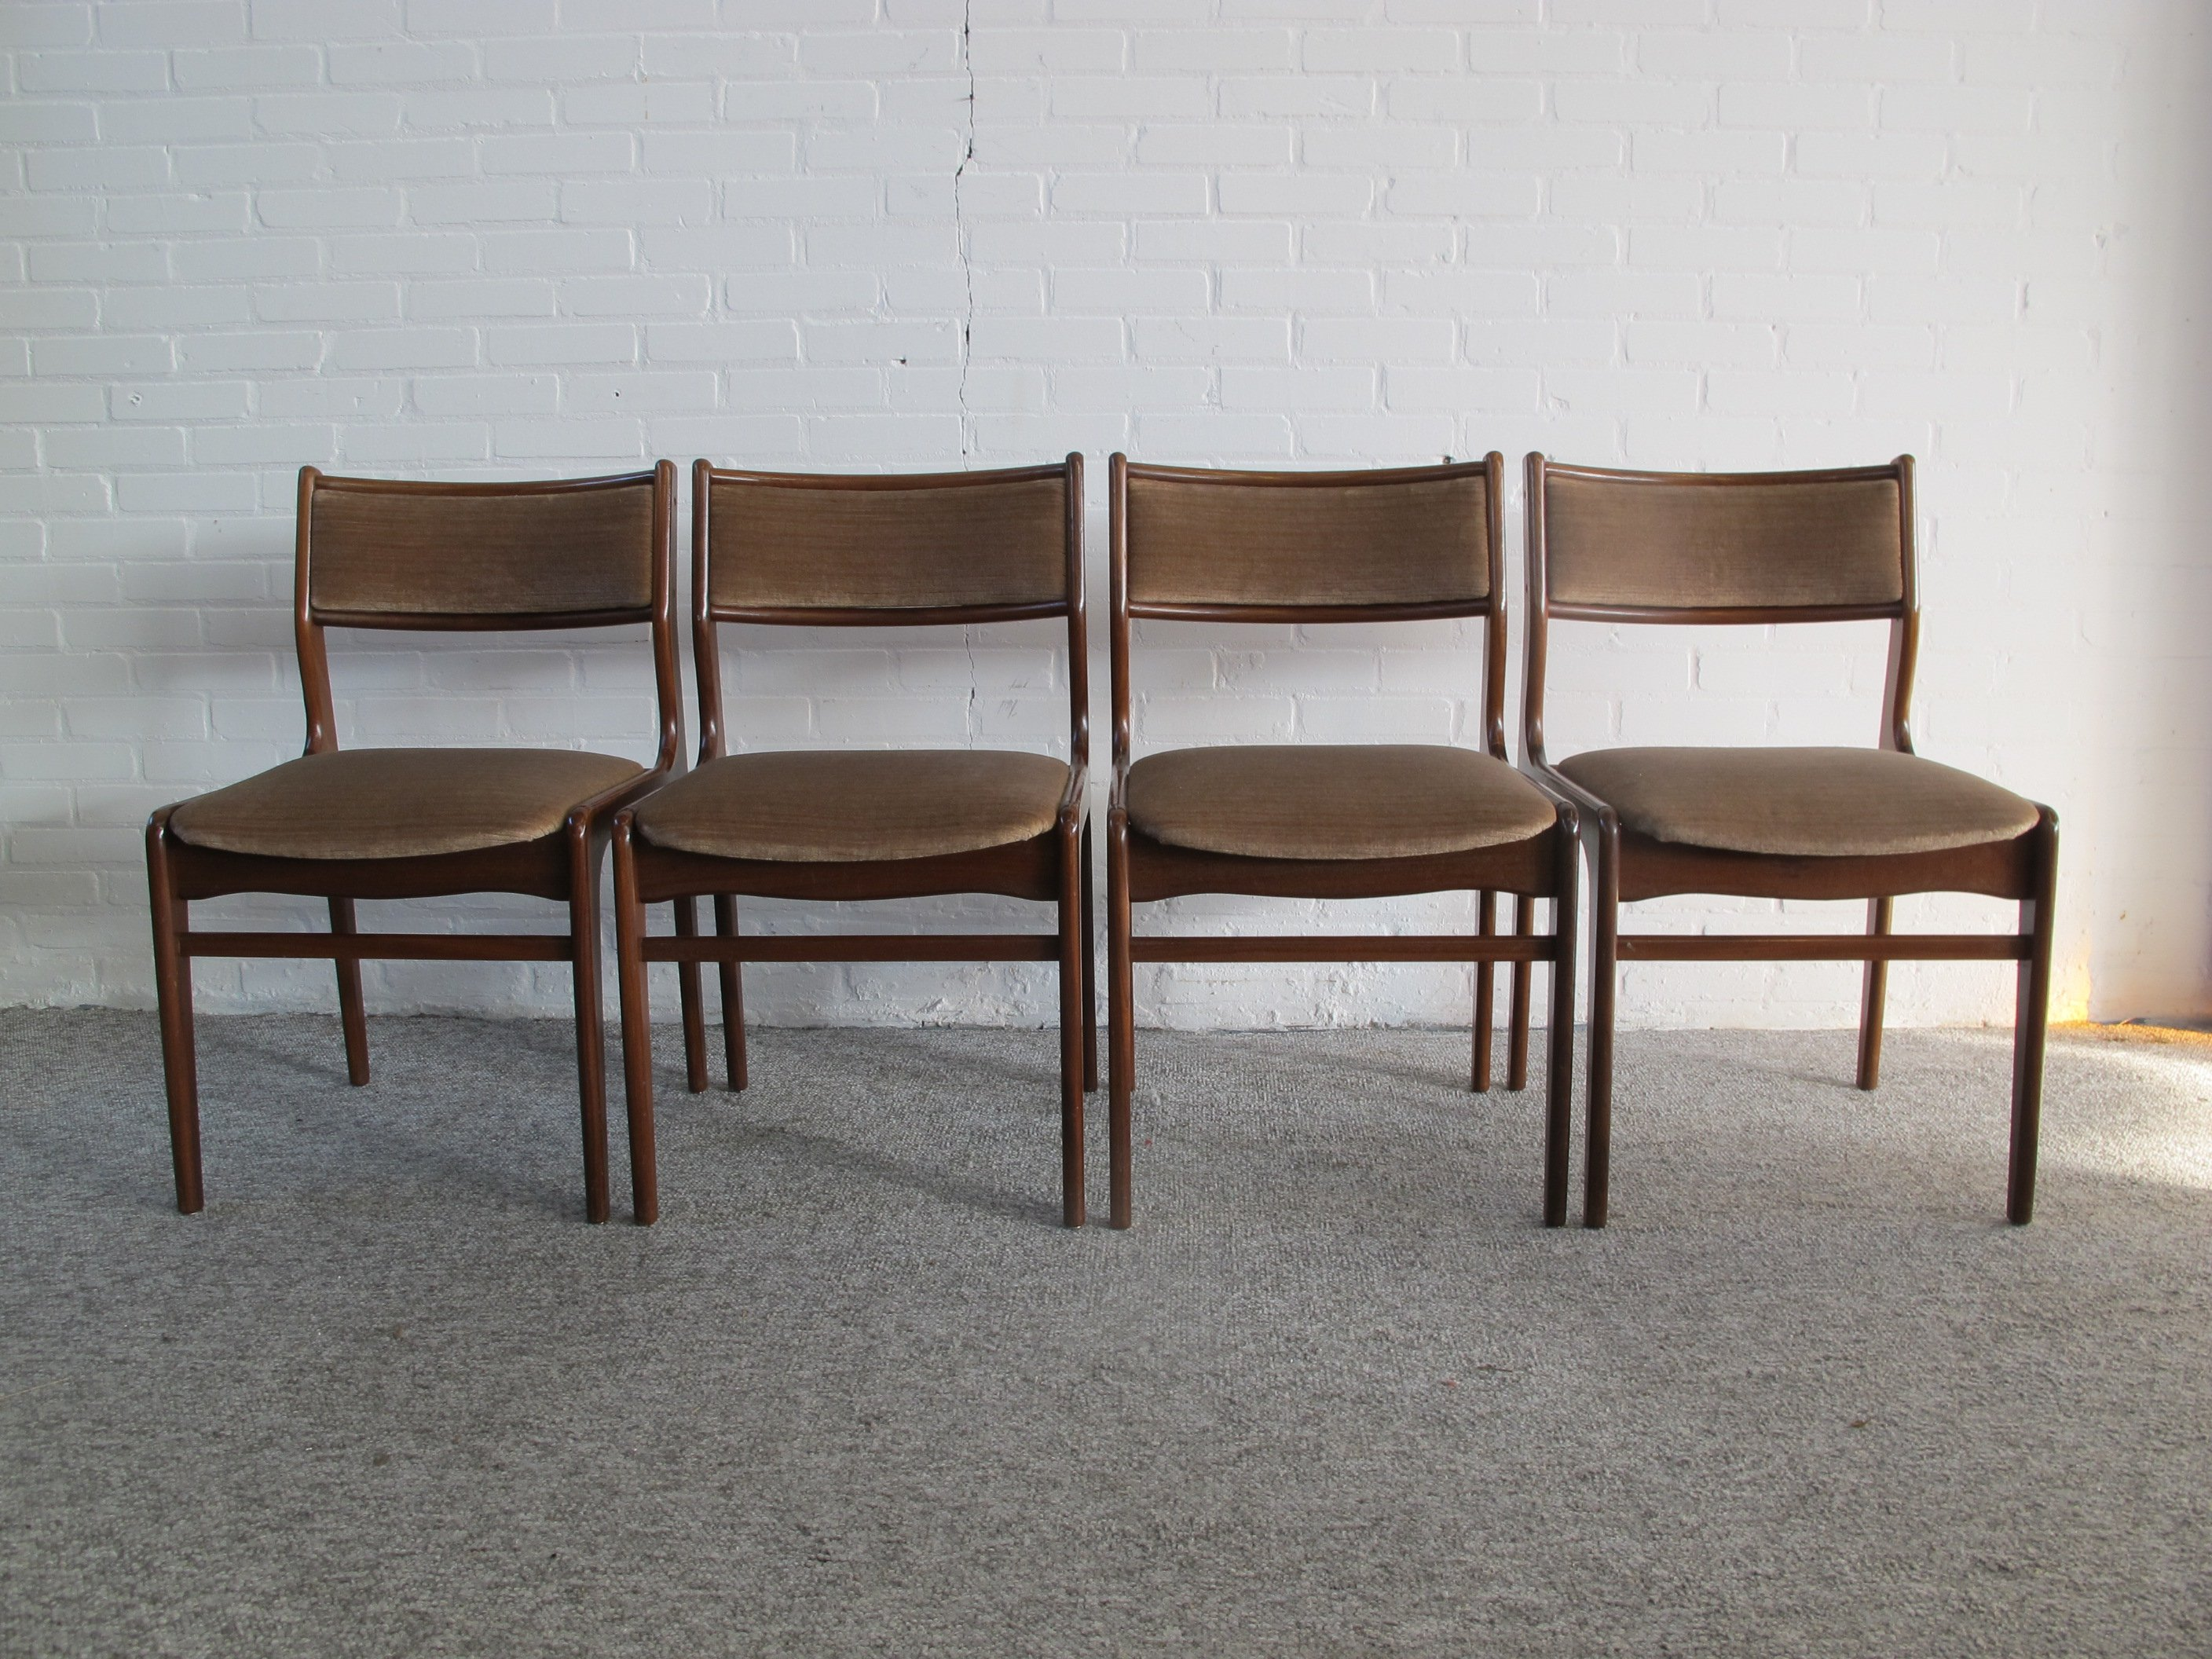 Magnificent Set Of 4 Vintage Mid Century Dining Chairs 60S Lamtechconsult Wood Chair Design Ideas Lamtechconsultcom